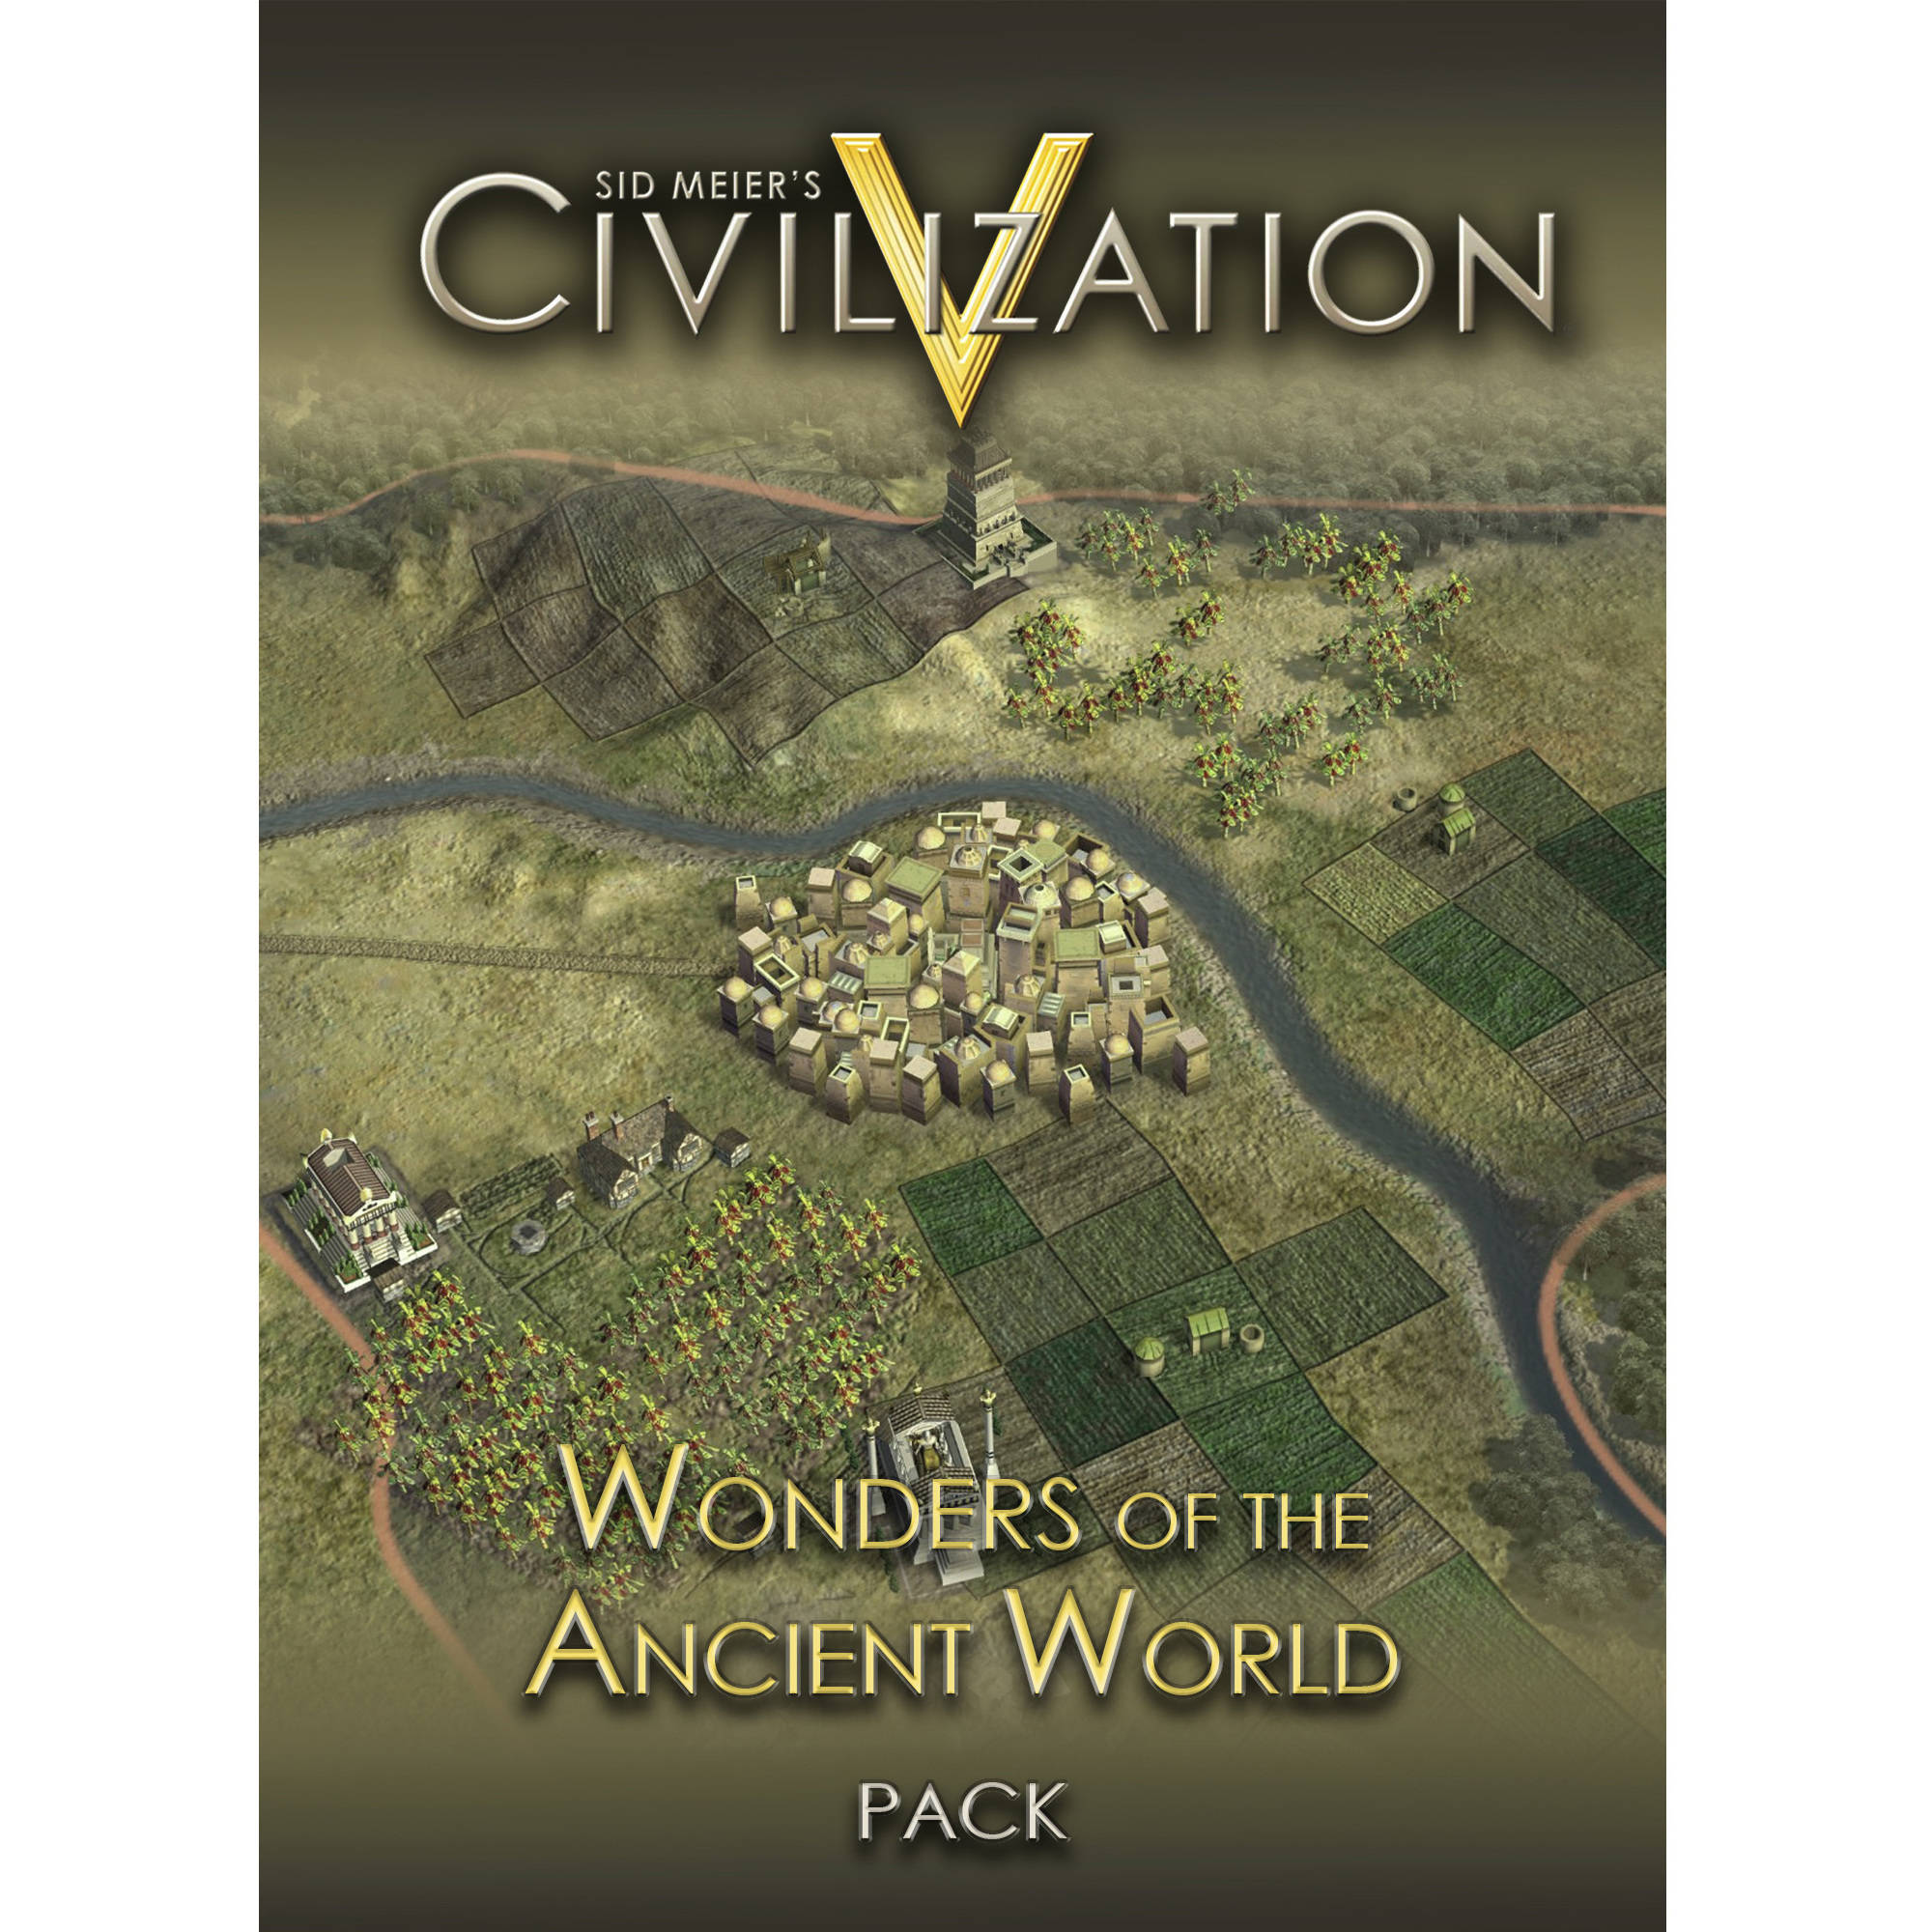 Sid Meier's Civilization V Wonders of the Ancient World Pack (PC) (Digital Download)